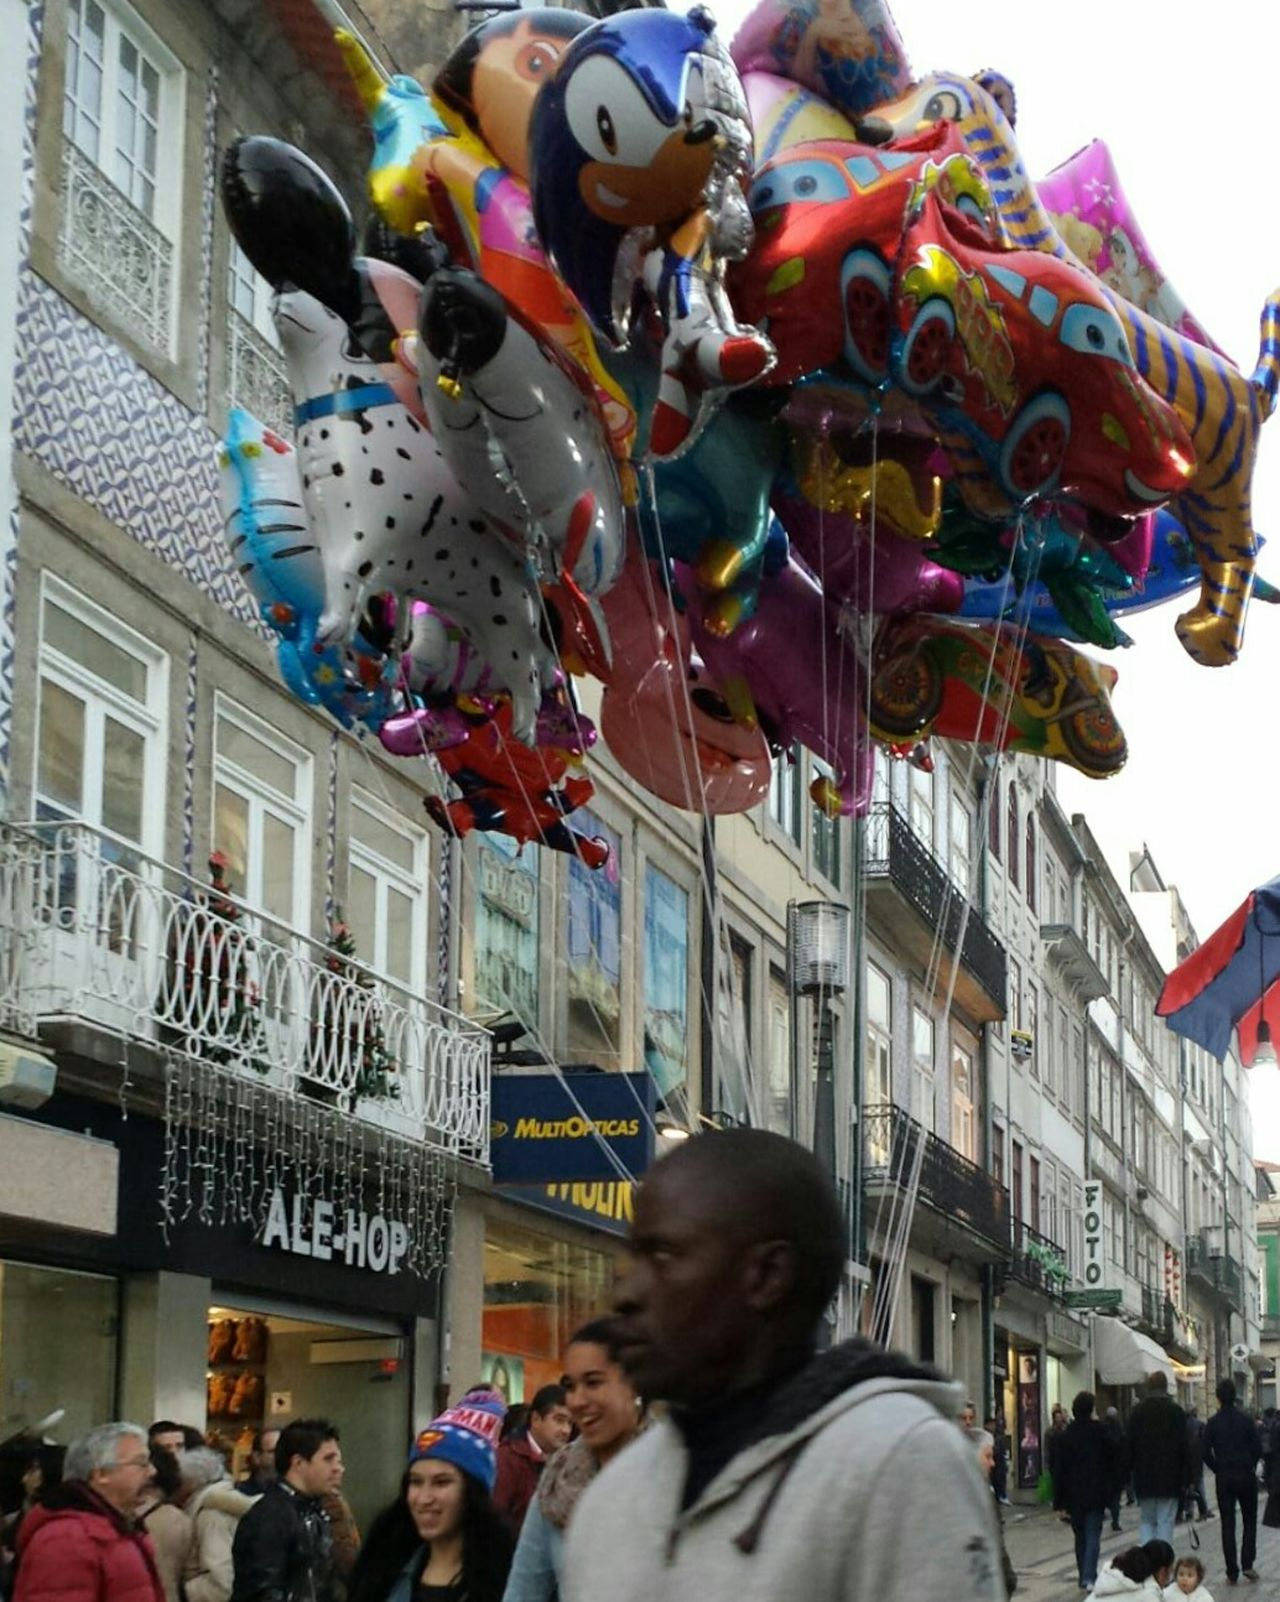 Passeando pelo Porto Relaxing Taking Photos Hello World Retrato Urban Street View Eye4photography  People Watching Balloon Ball